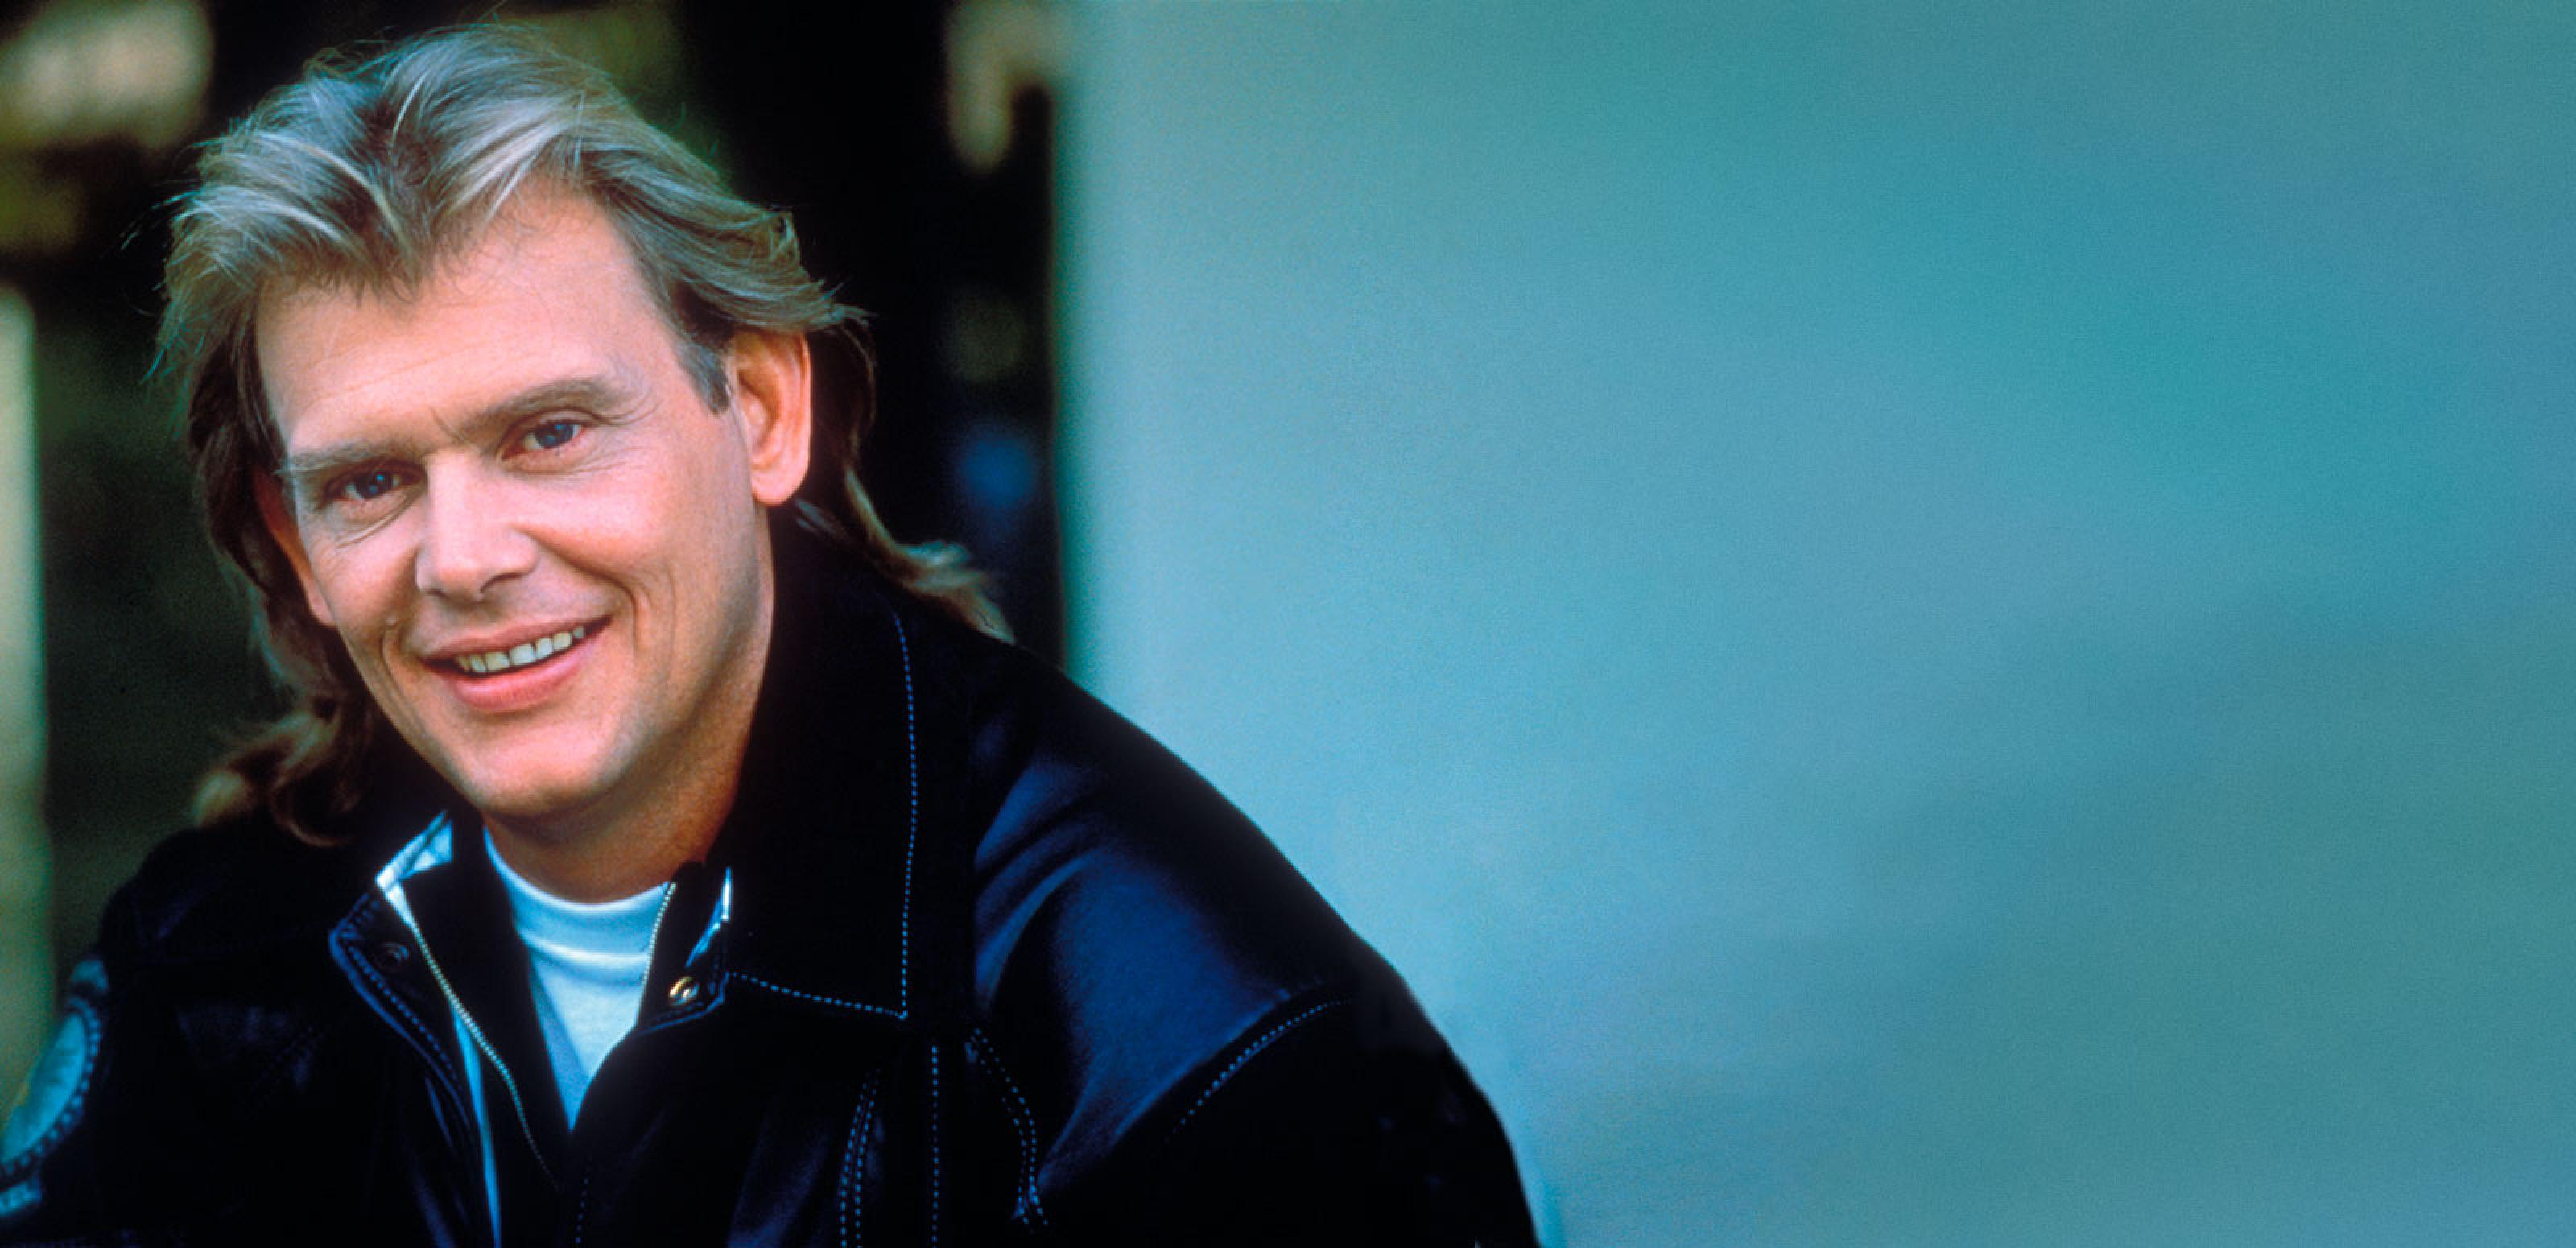 Singer John Farnham, circa late 1980s wearing a black jacket, pictured from the shoulders up. He has his head tilted slightly towards the camera and is smiling.